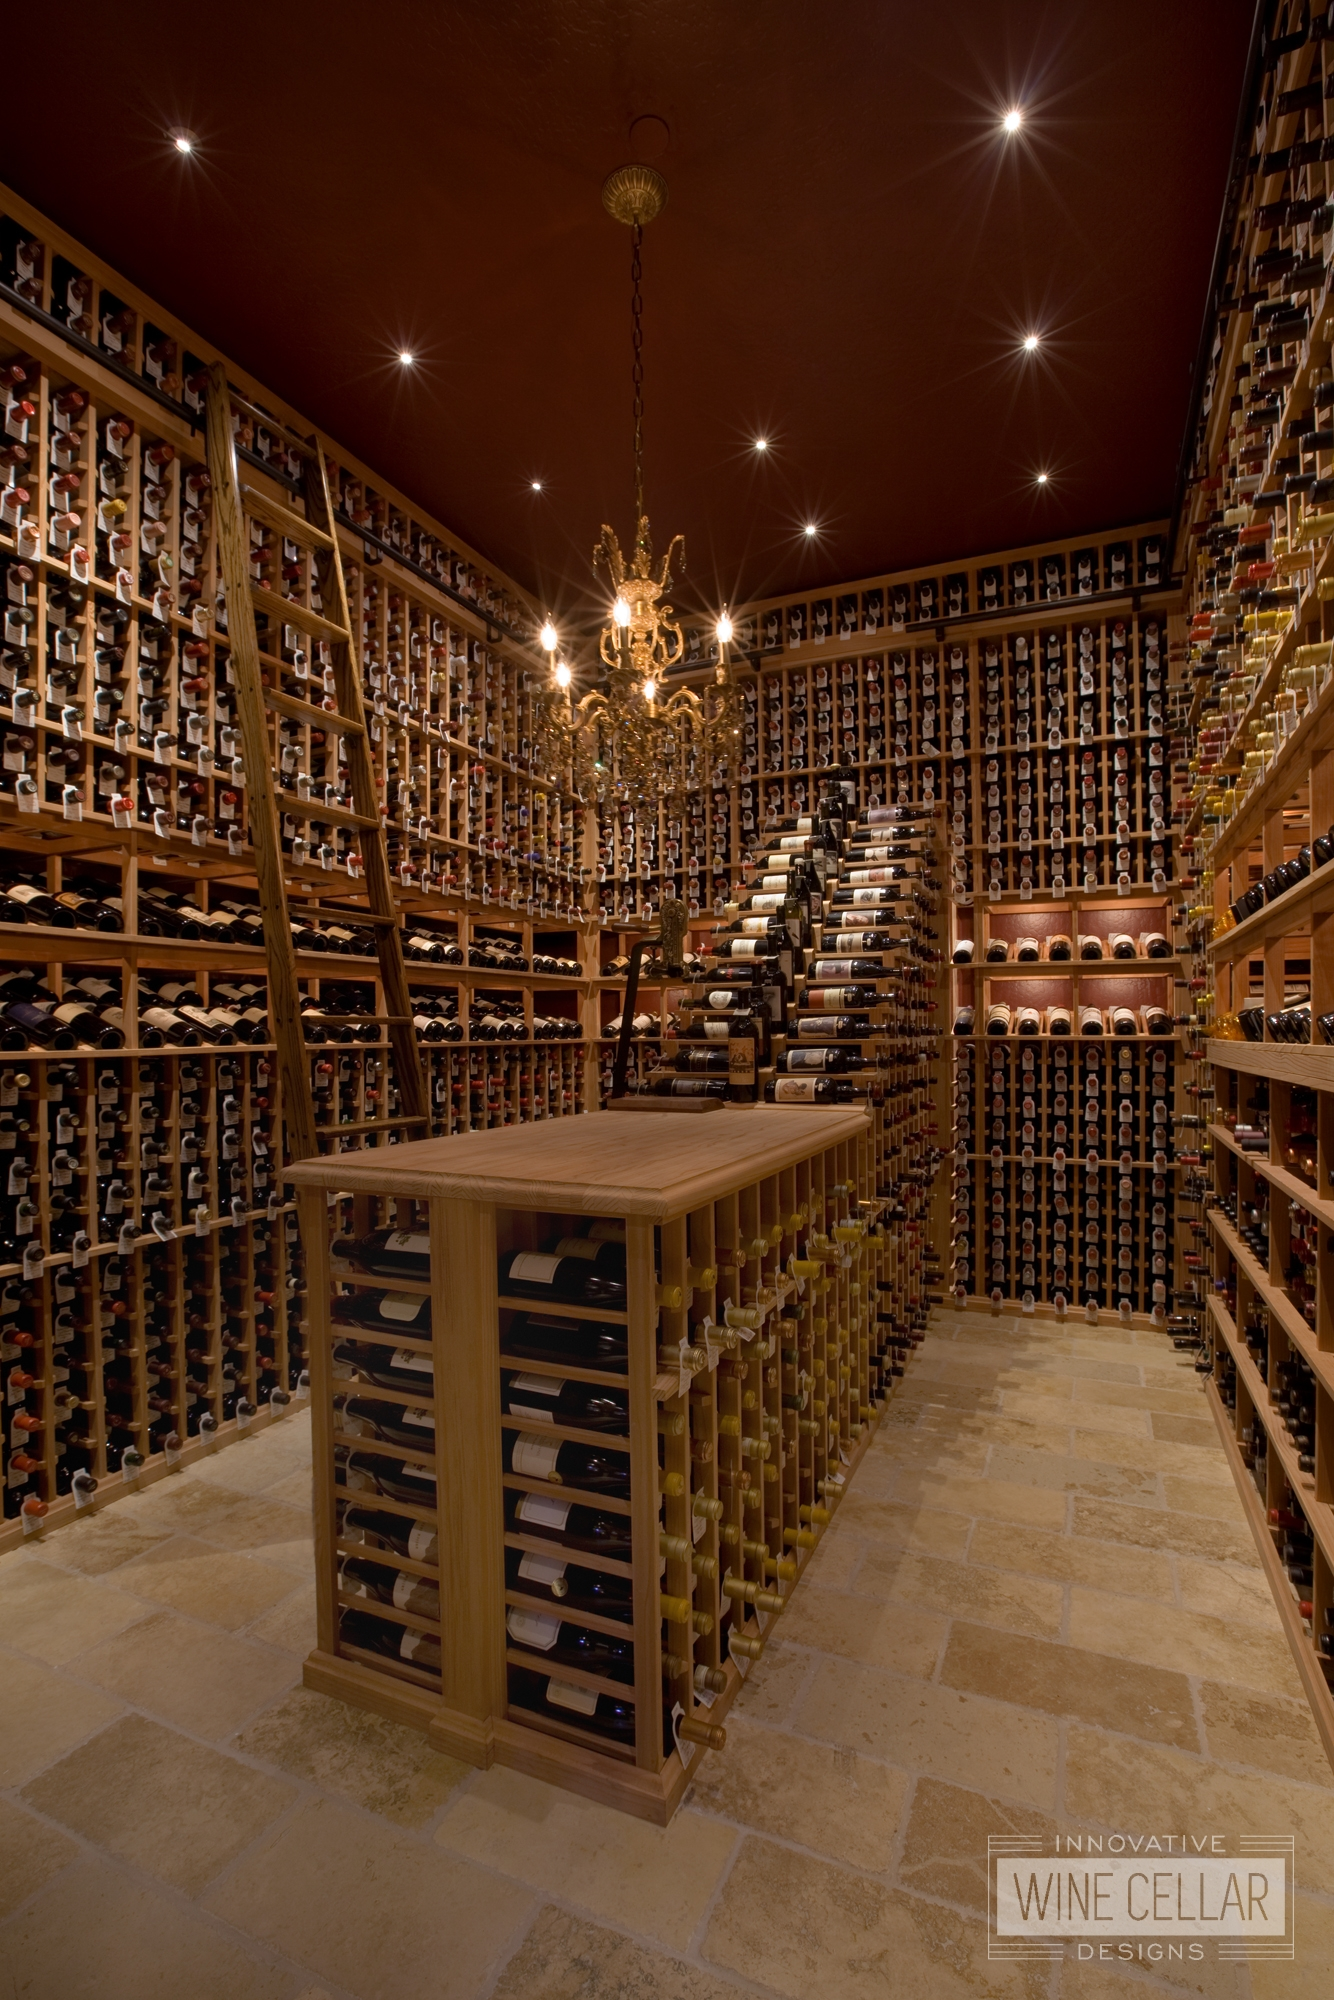 Custom Floor to Ceiling Wood Wine Racks by Innovative Wine Cellar Designs